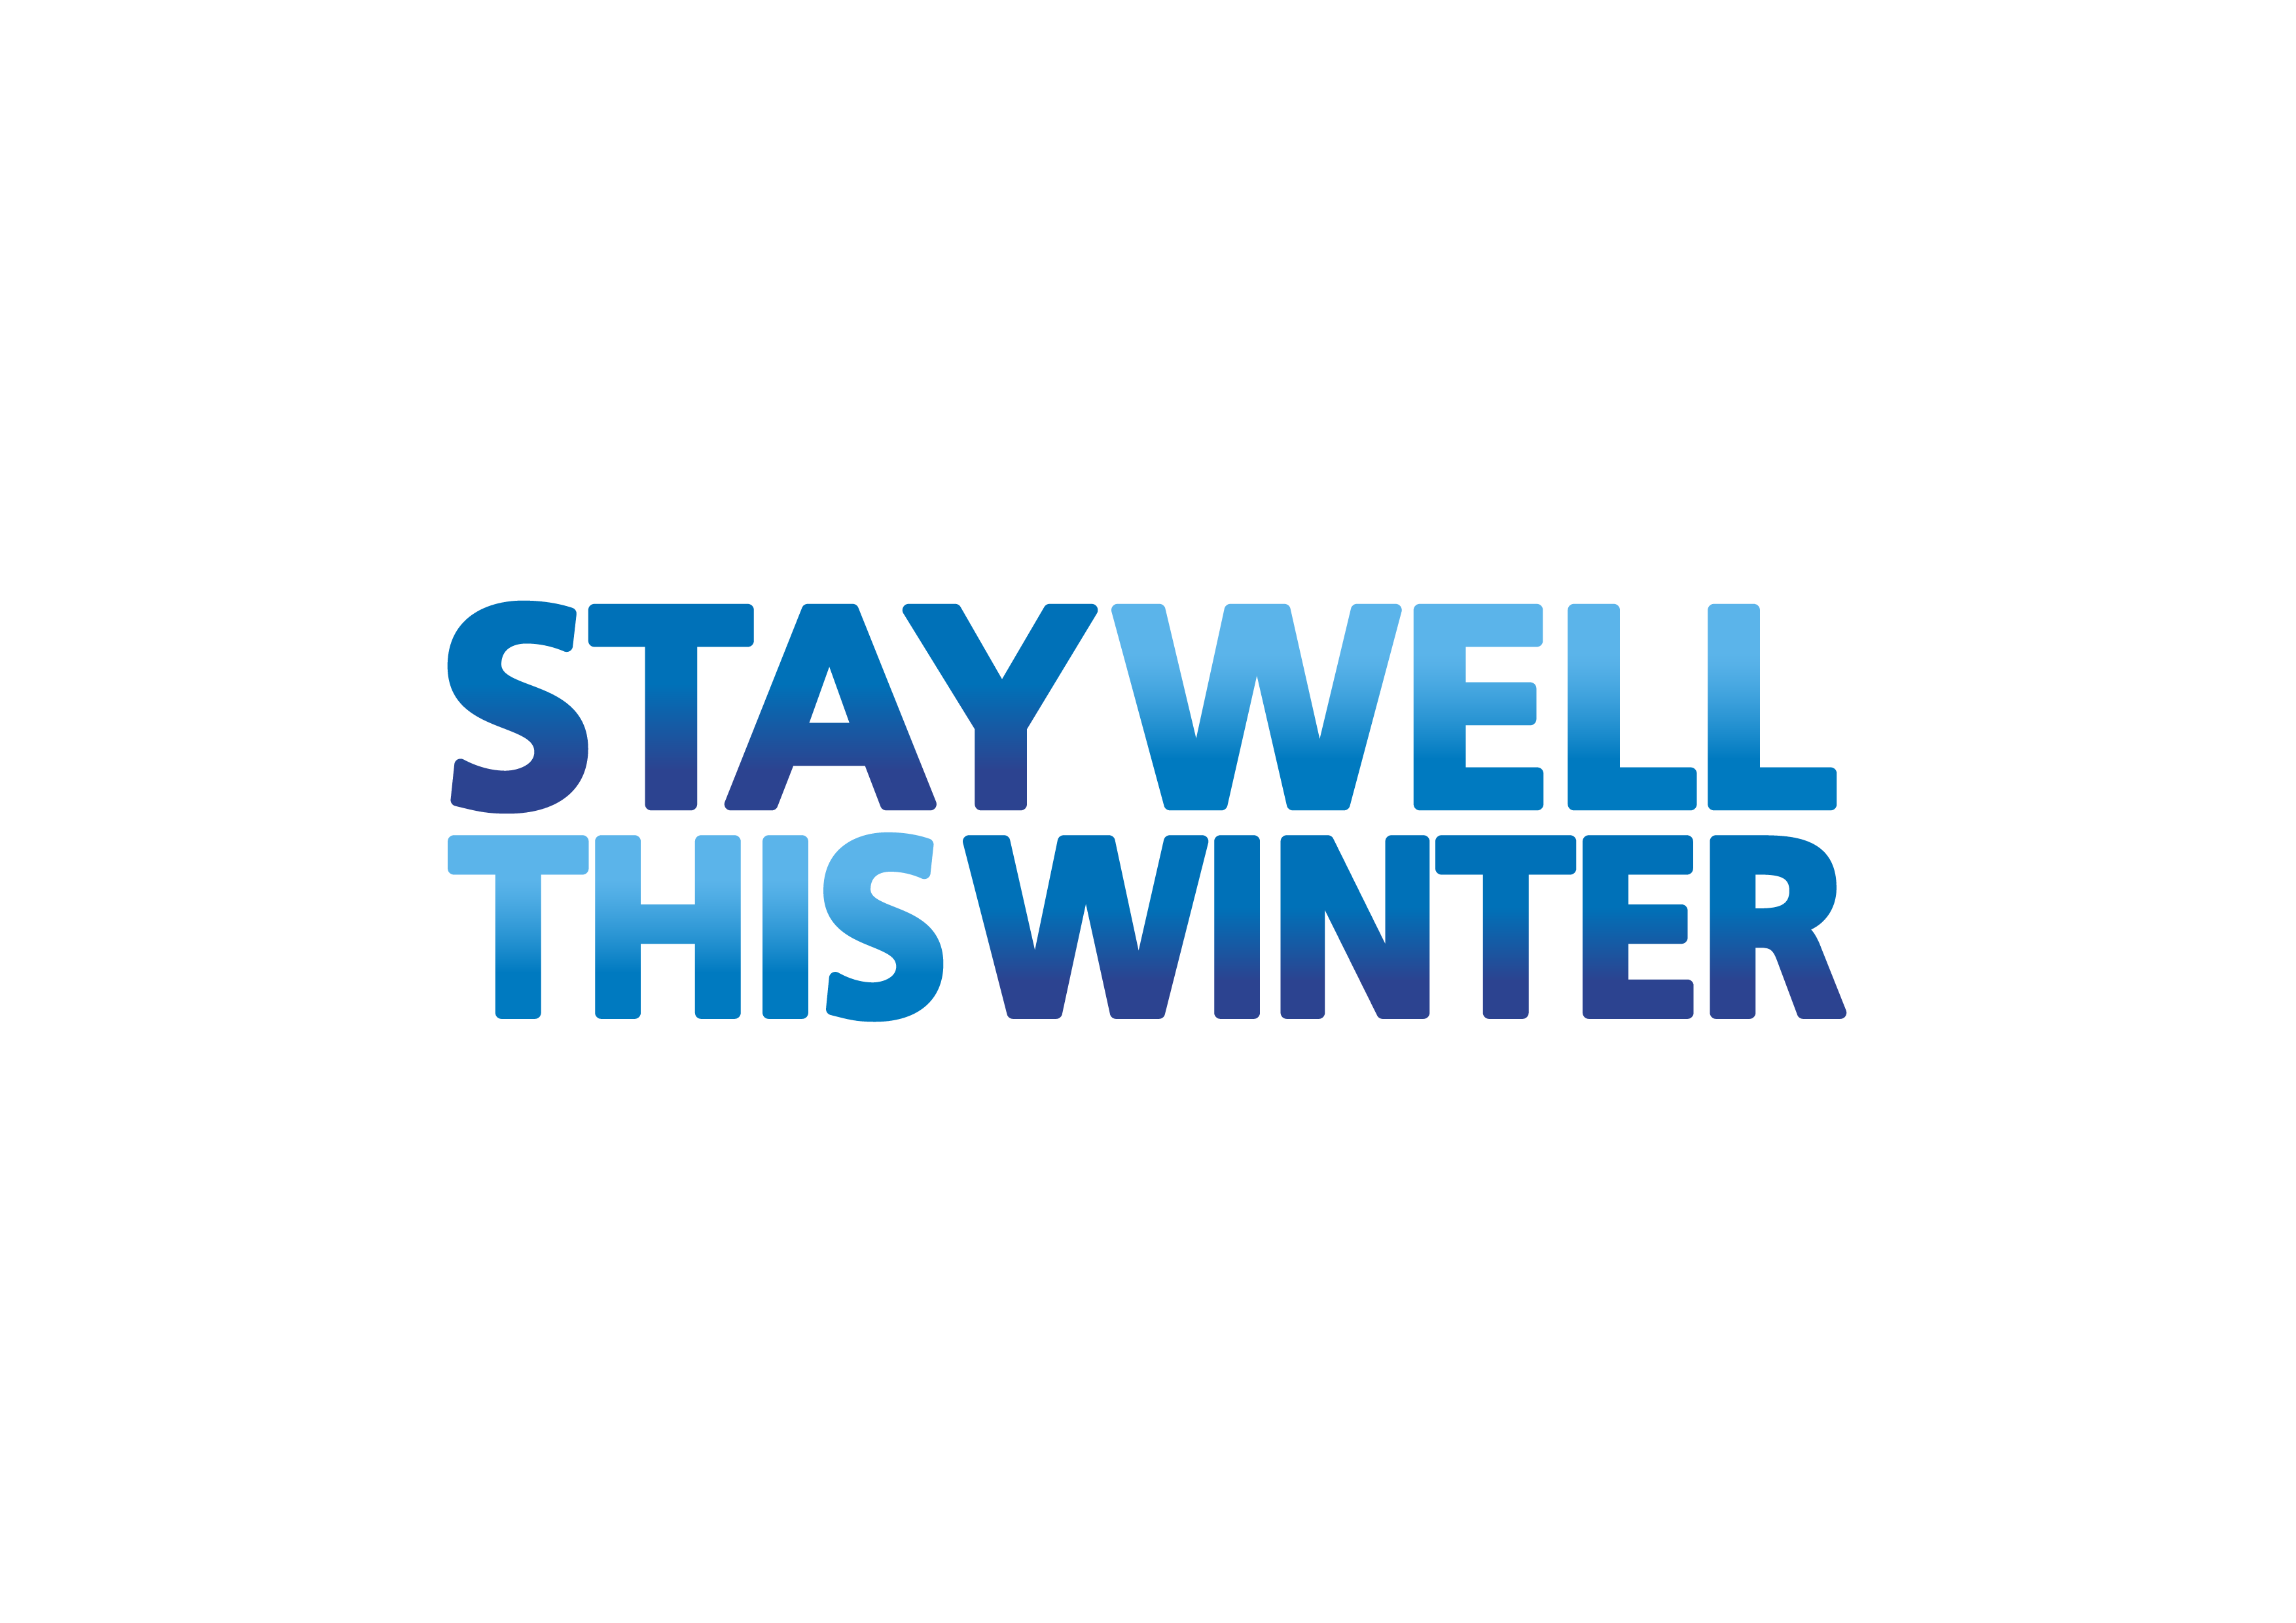 Stay well